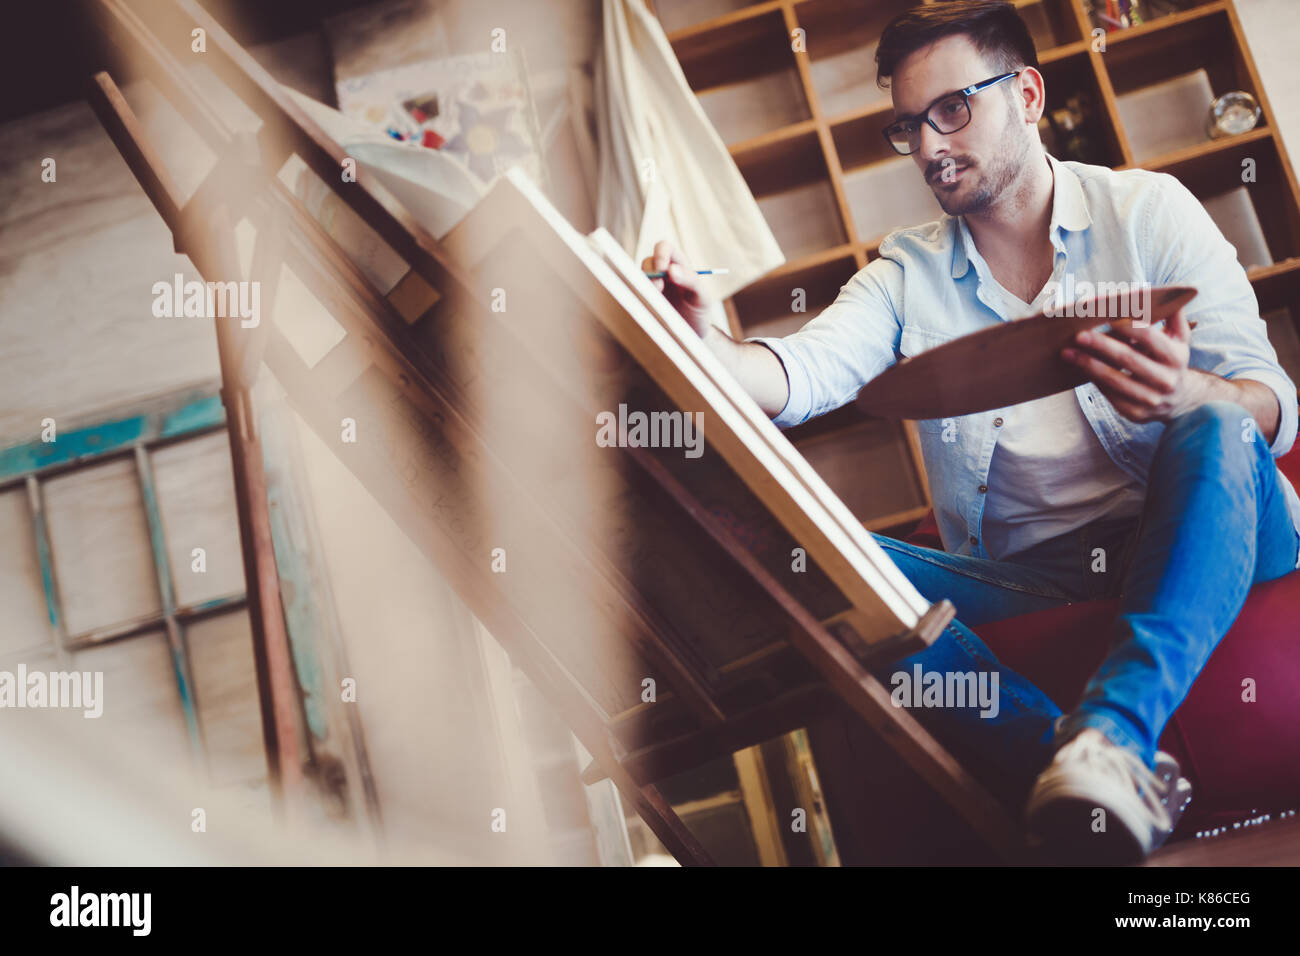 Male art school artist painting with oil on canvas - Stock Image